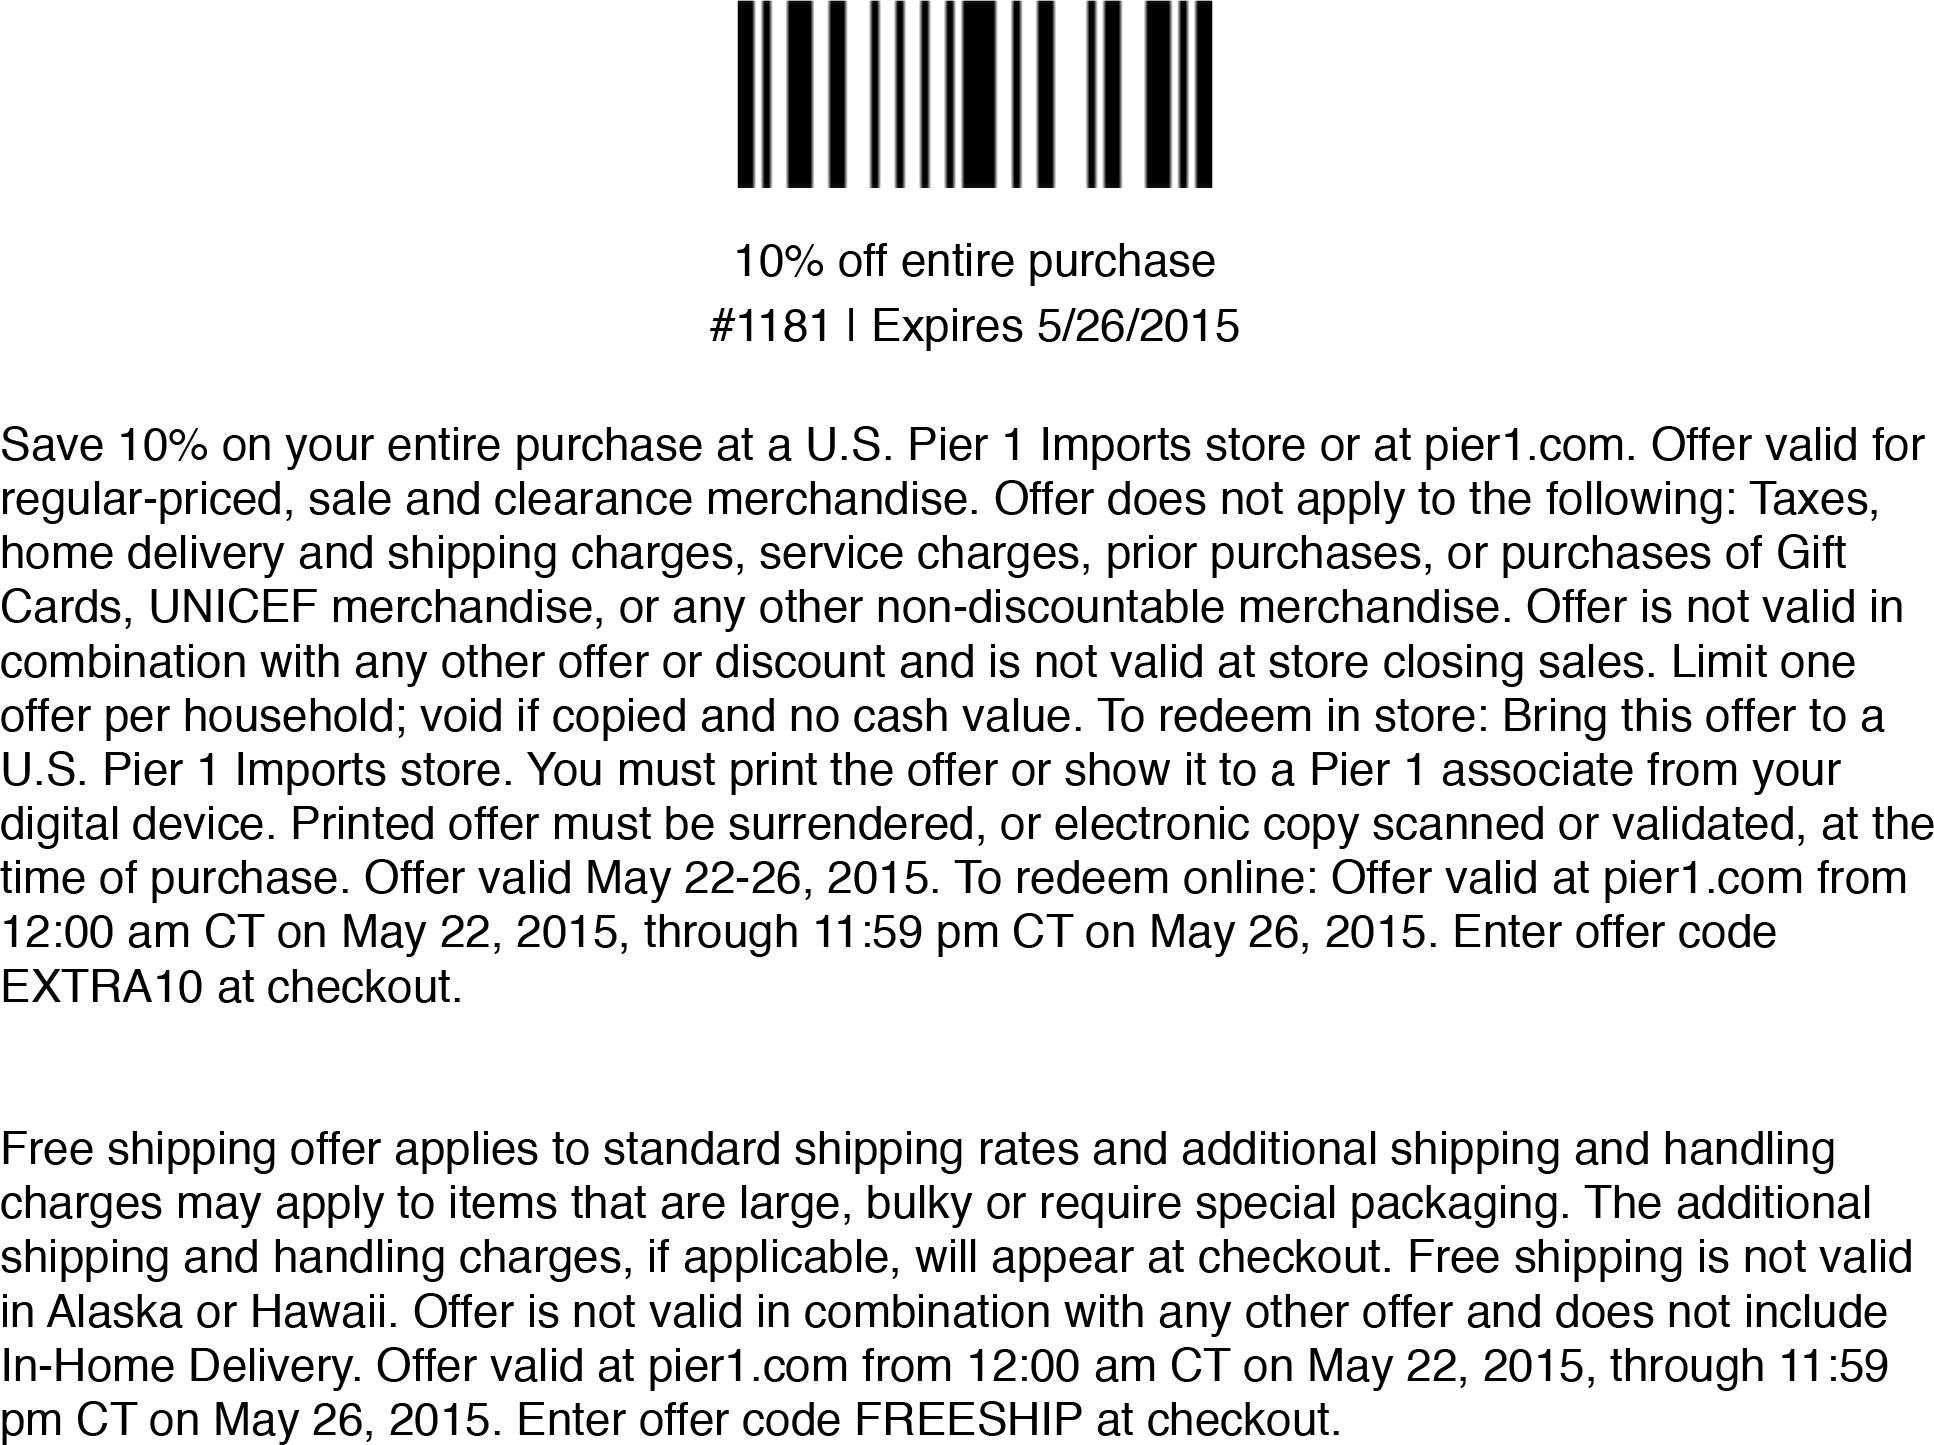 Pier 1 Coupon May 2017 10% off everything today at Pier 1 Imports, or online via promo code EXTRA10